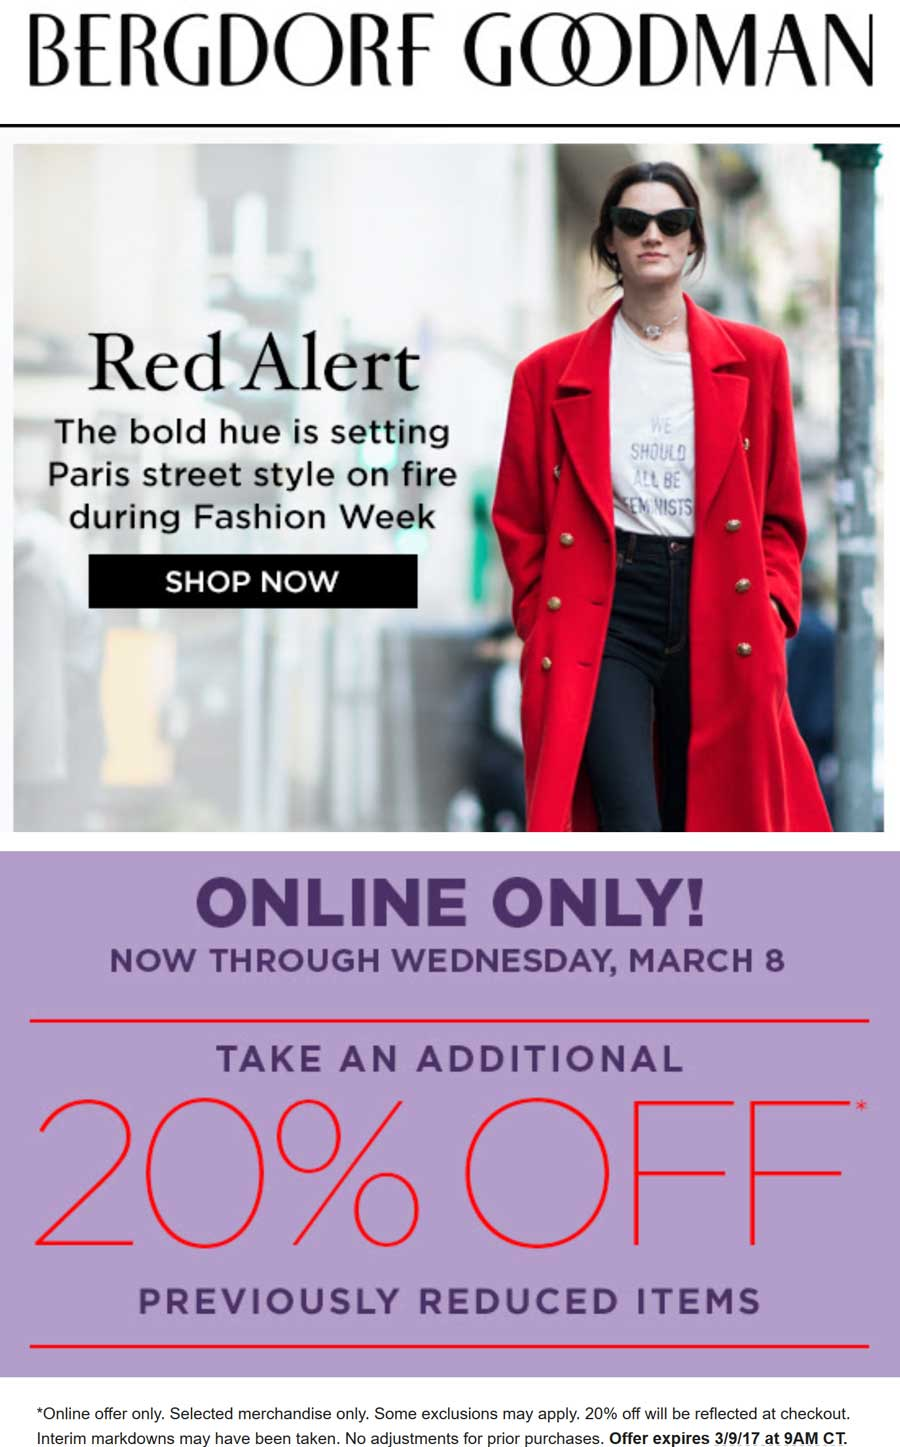 Bergdorf Goodman Coupon March 2019 Extra 20% off sale items online at Bergdorf Goodman